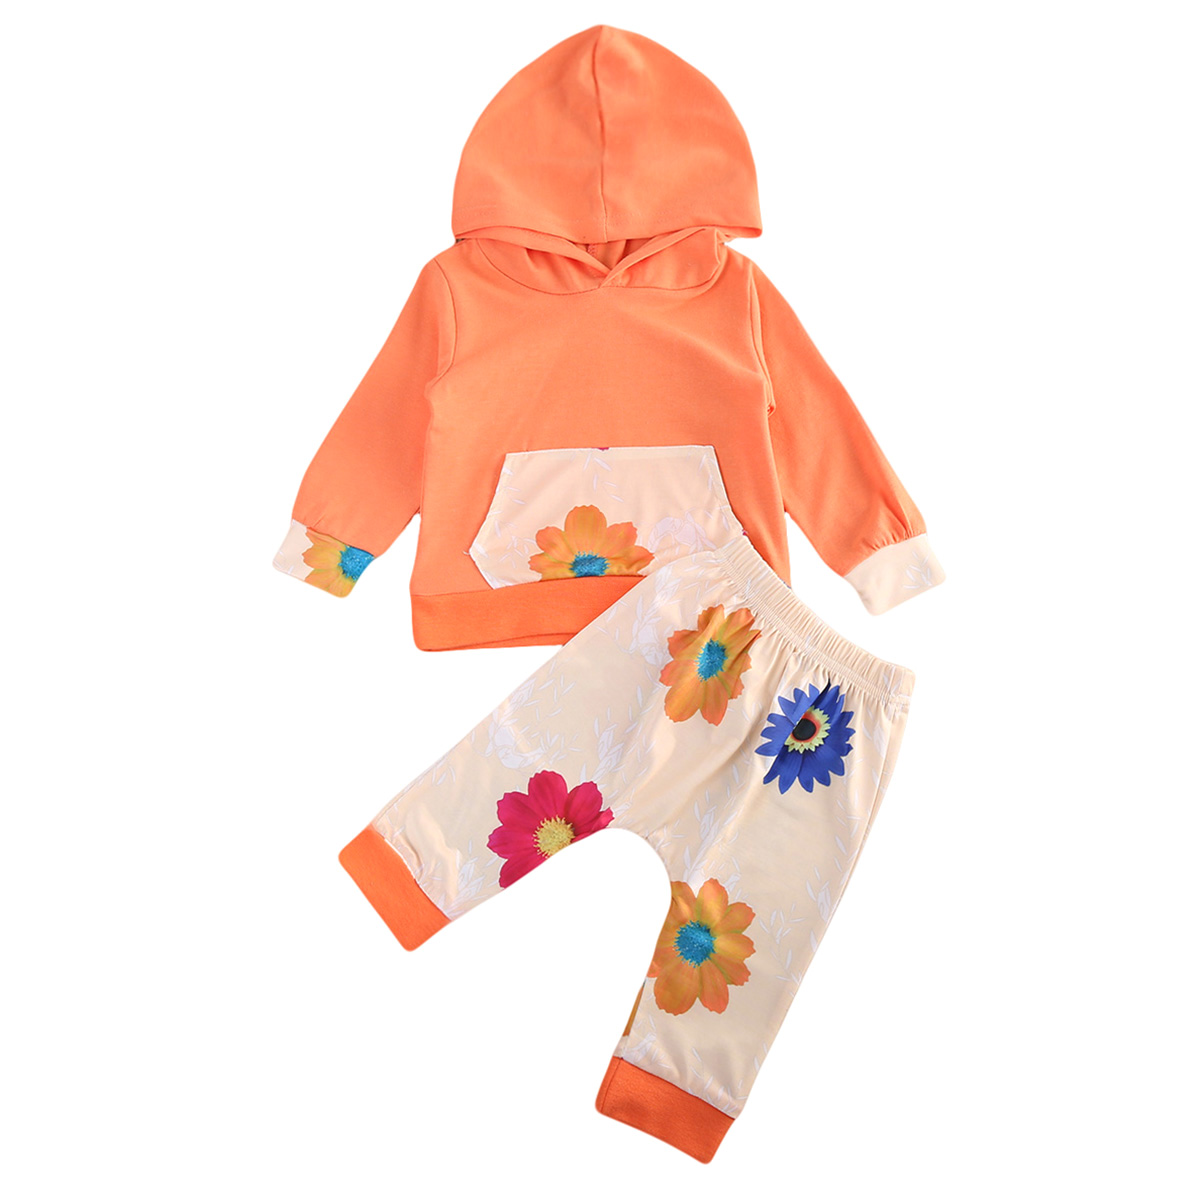 Fashion Baby Clothing Sets Girls Hooded Sweatshirt Tops + Floral Pants 2pcs Autumn Winter Long Sleeve Outfits Clothes Set 3 pcs set girls baby clothing sets sleeveless shirt tops floral pants headband vogue clothes 2 6 year hot selling